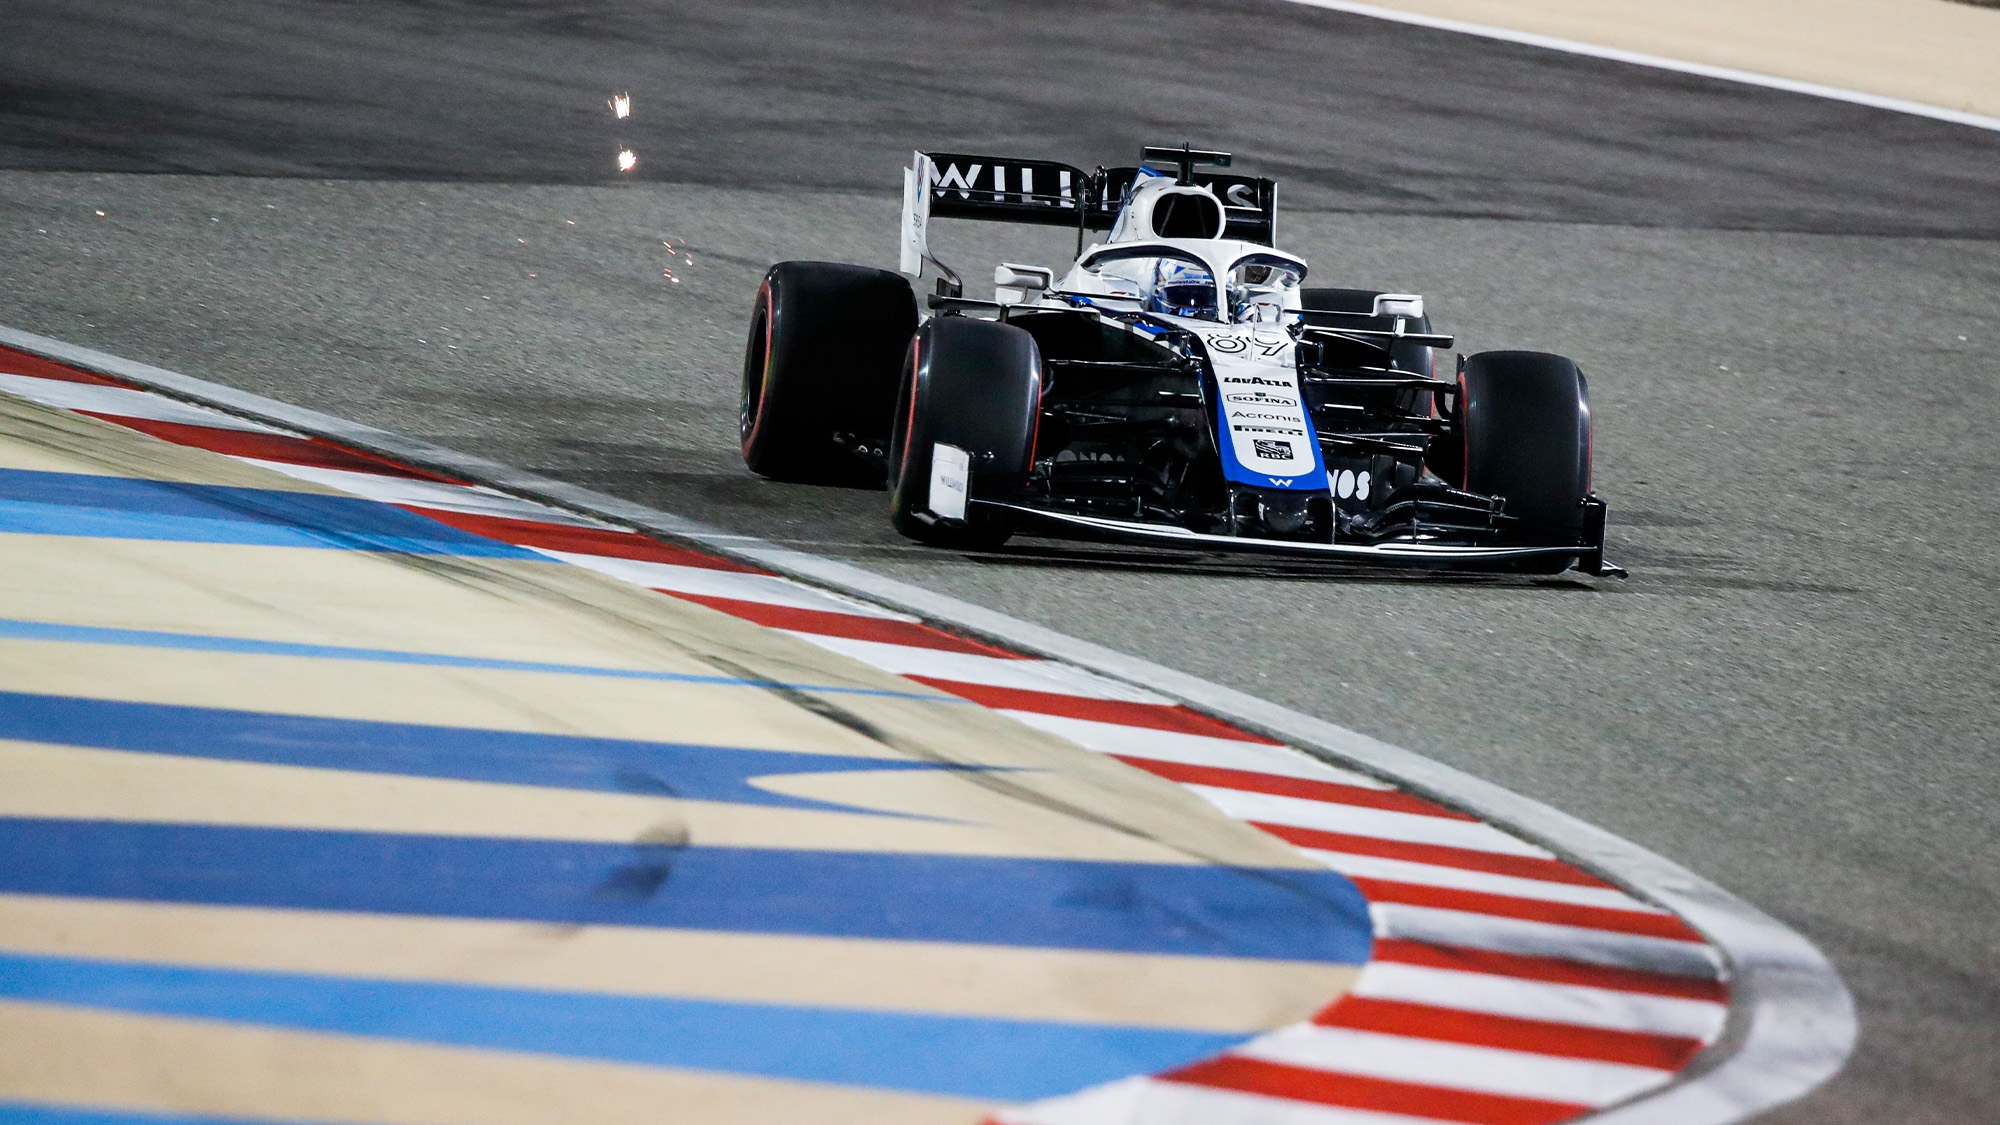 Jack Aitken in the Williams during practice for the 2020 Sakhir Grand Prix